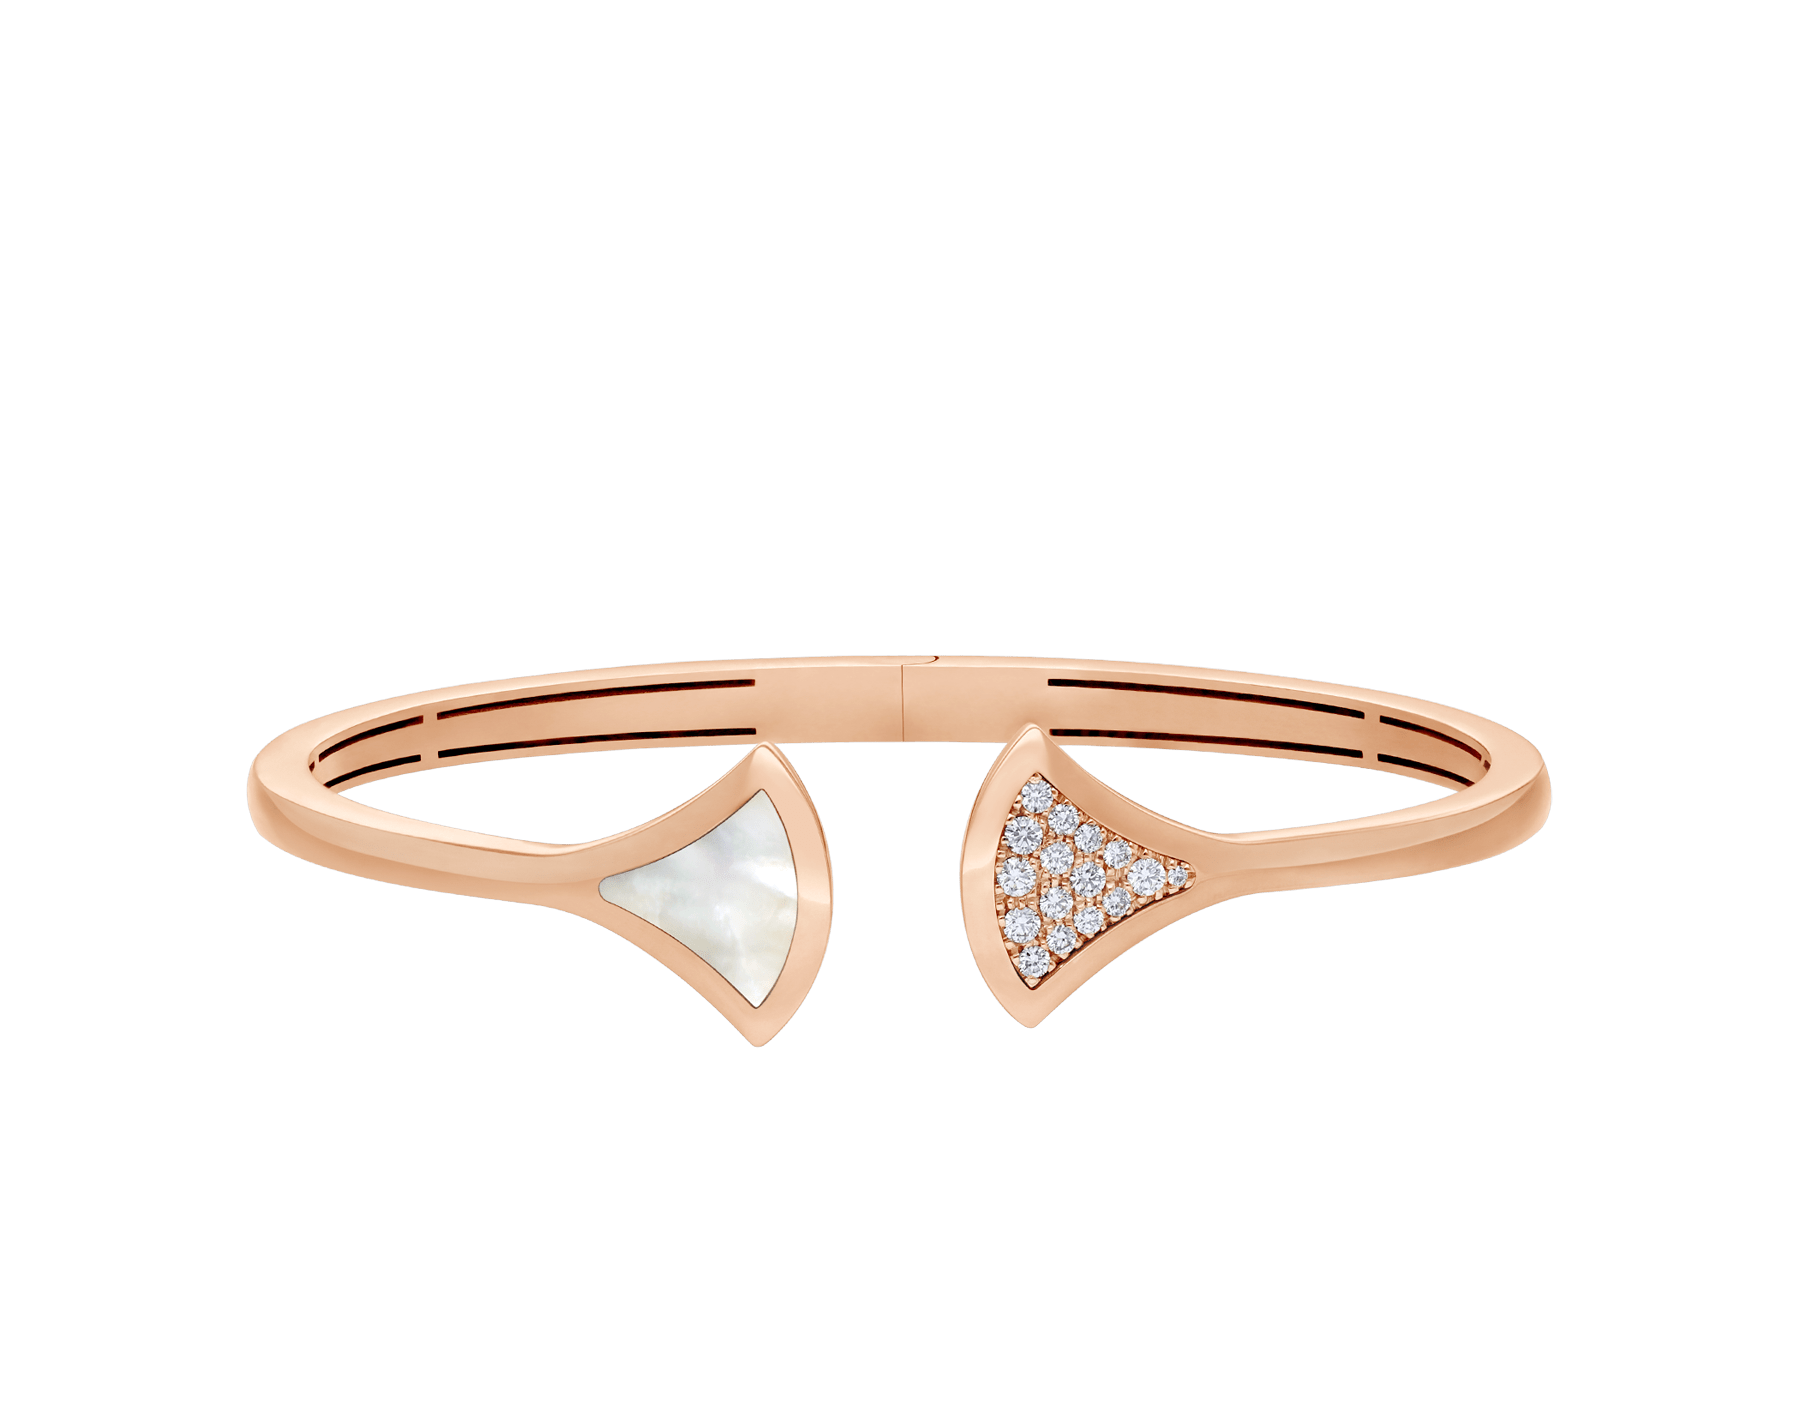 DIVAS' DREAM 18 kt rose gold bangle bracelet set with mother-of-pearl element and pavé diamonds (0.16 ct) BR858680 image 2